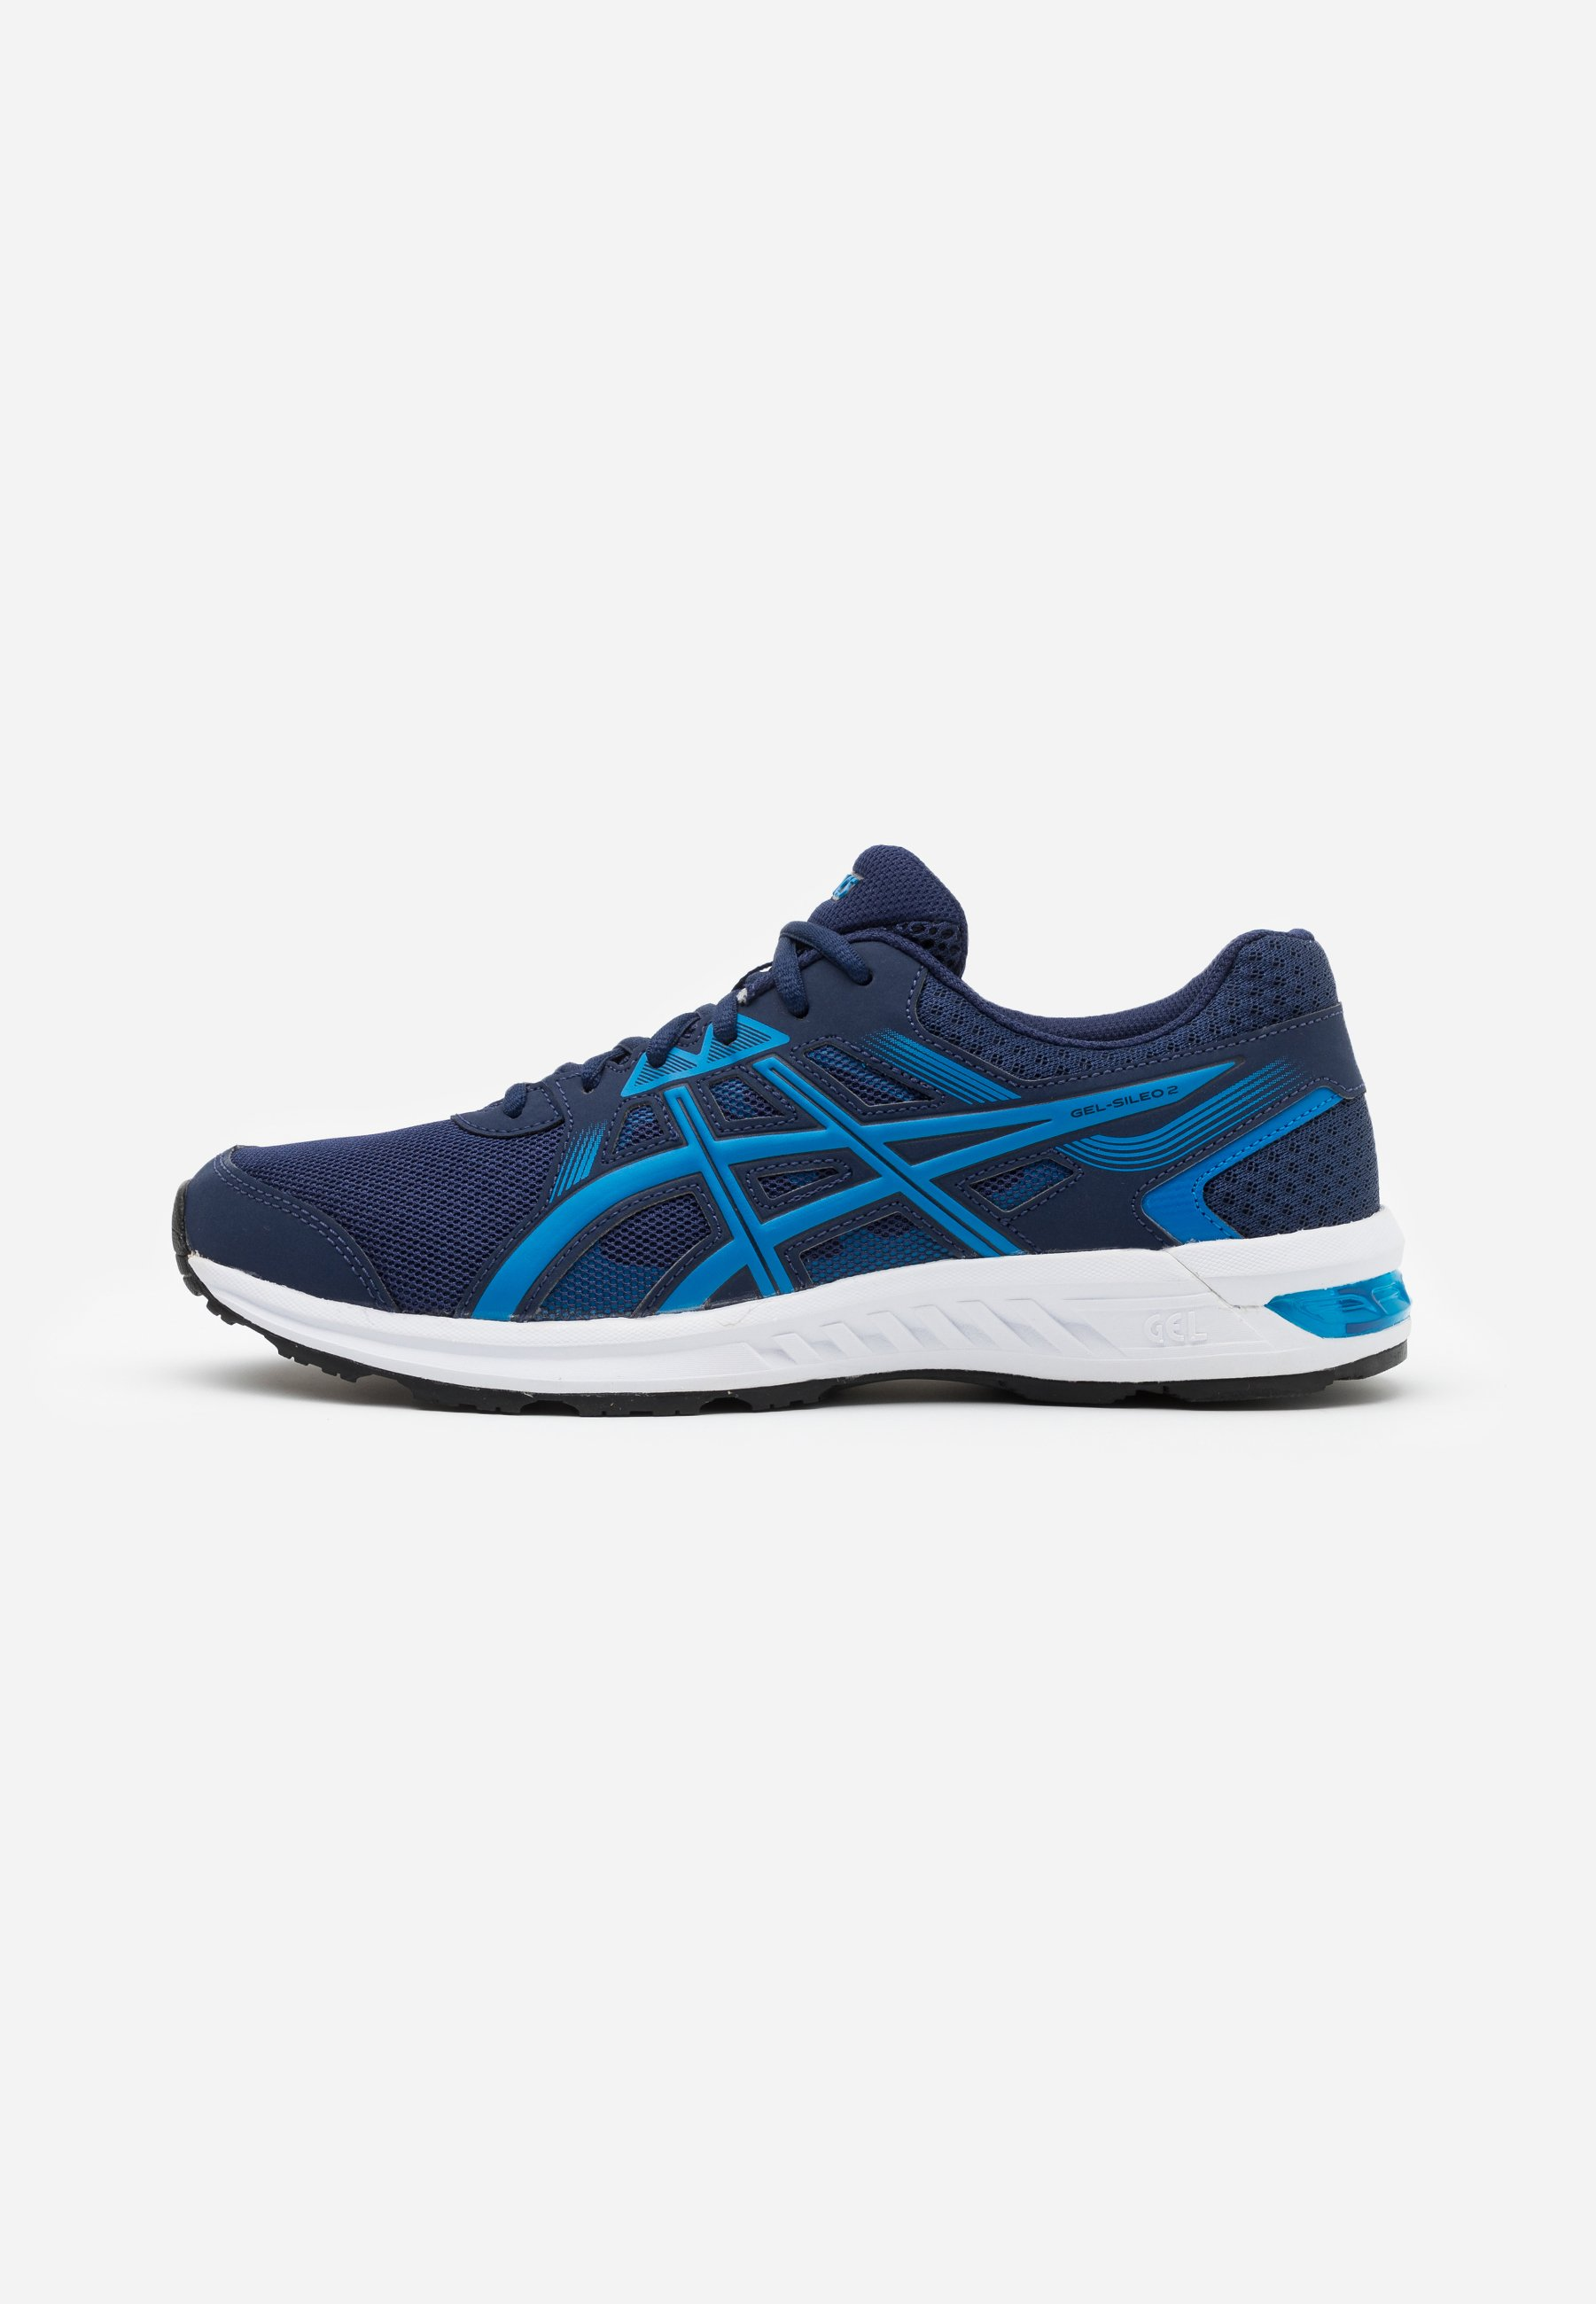 GEL SILEO 2 Laufschuh Neutral peacoatelectric blue